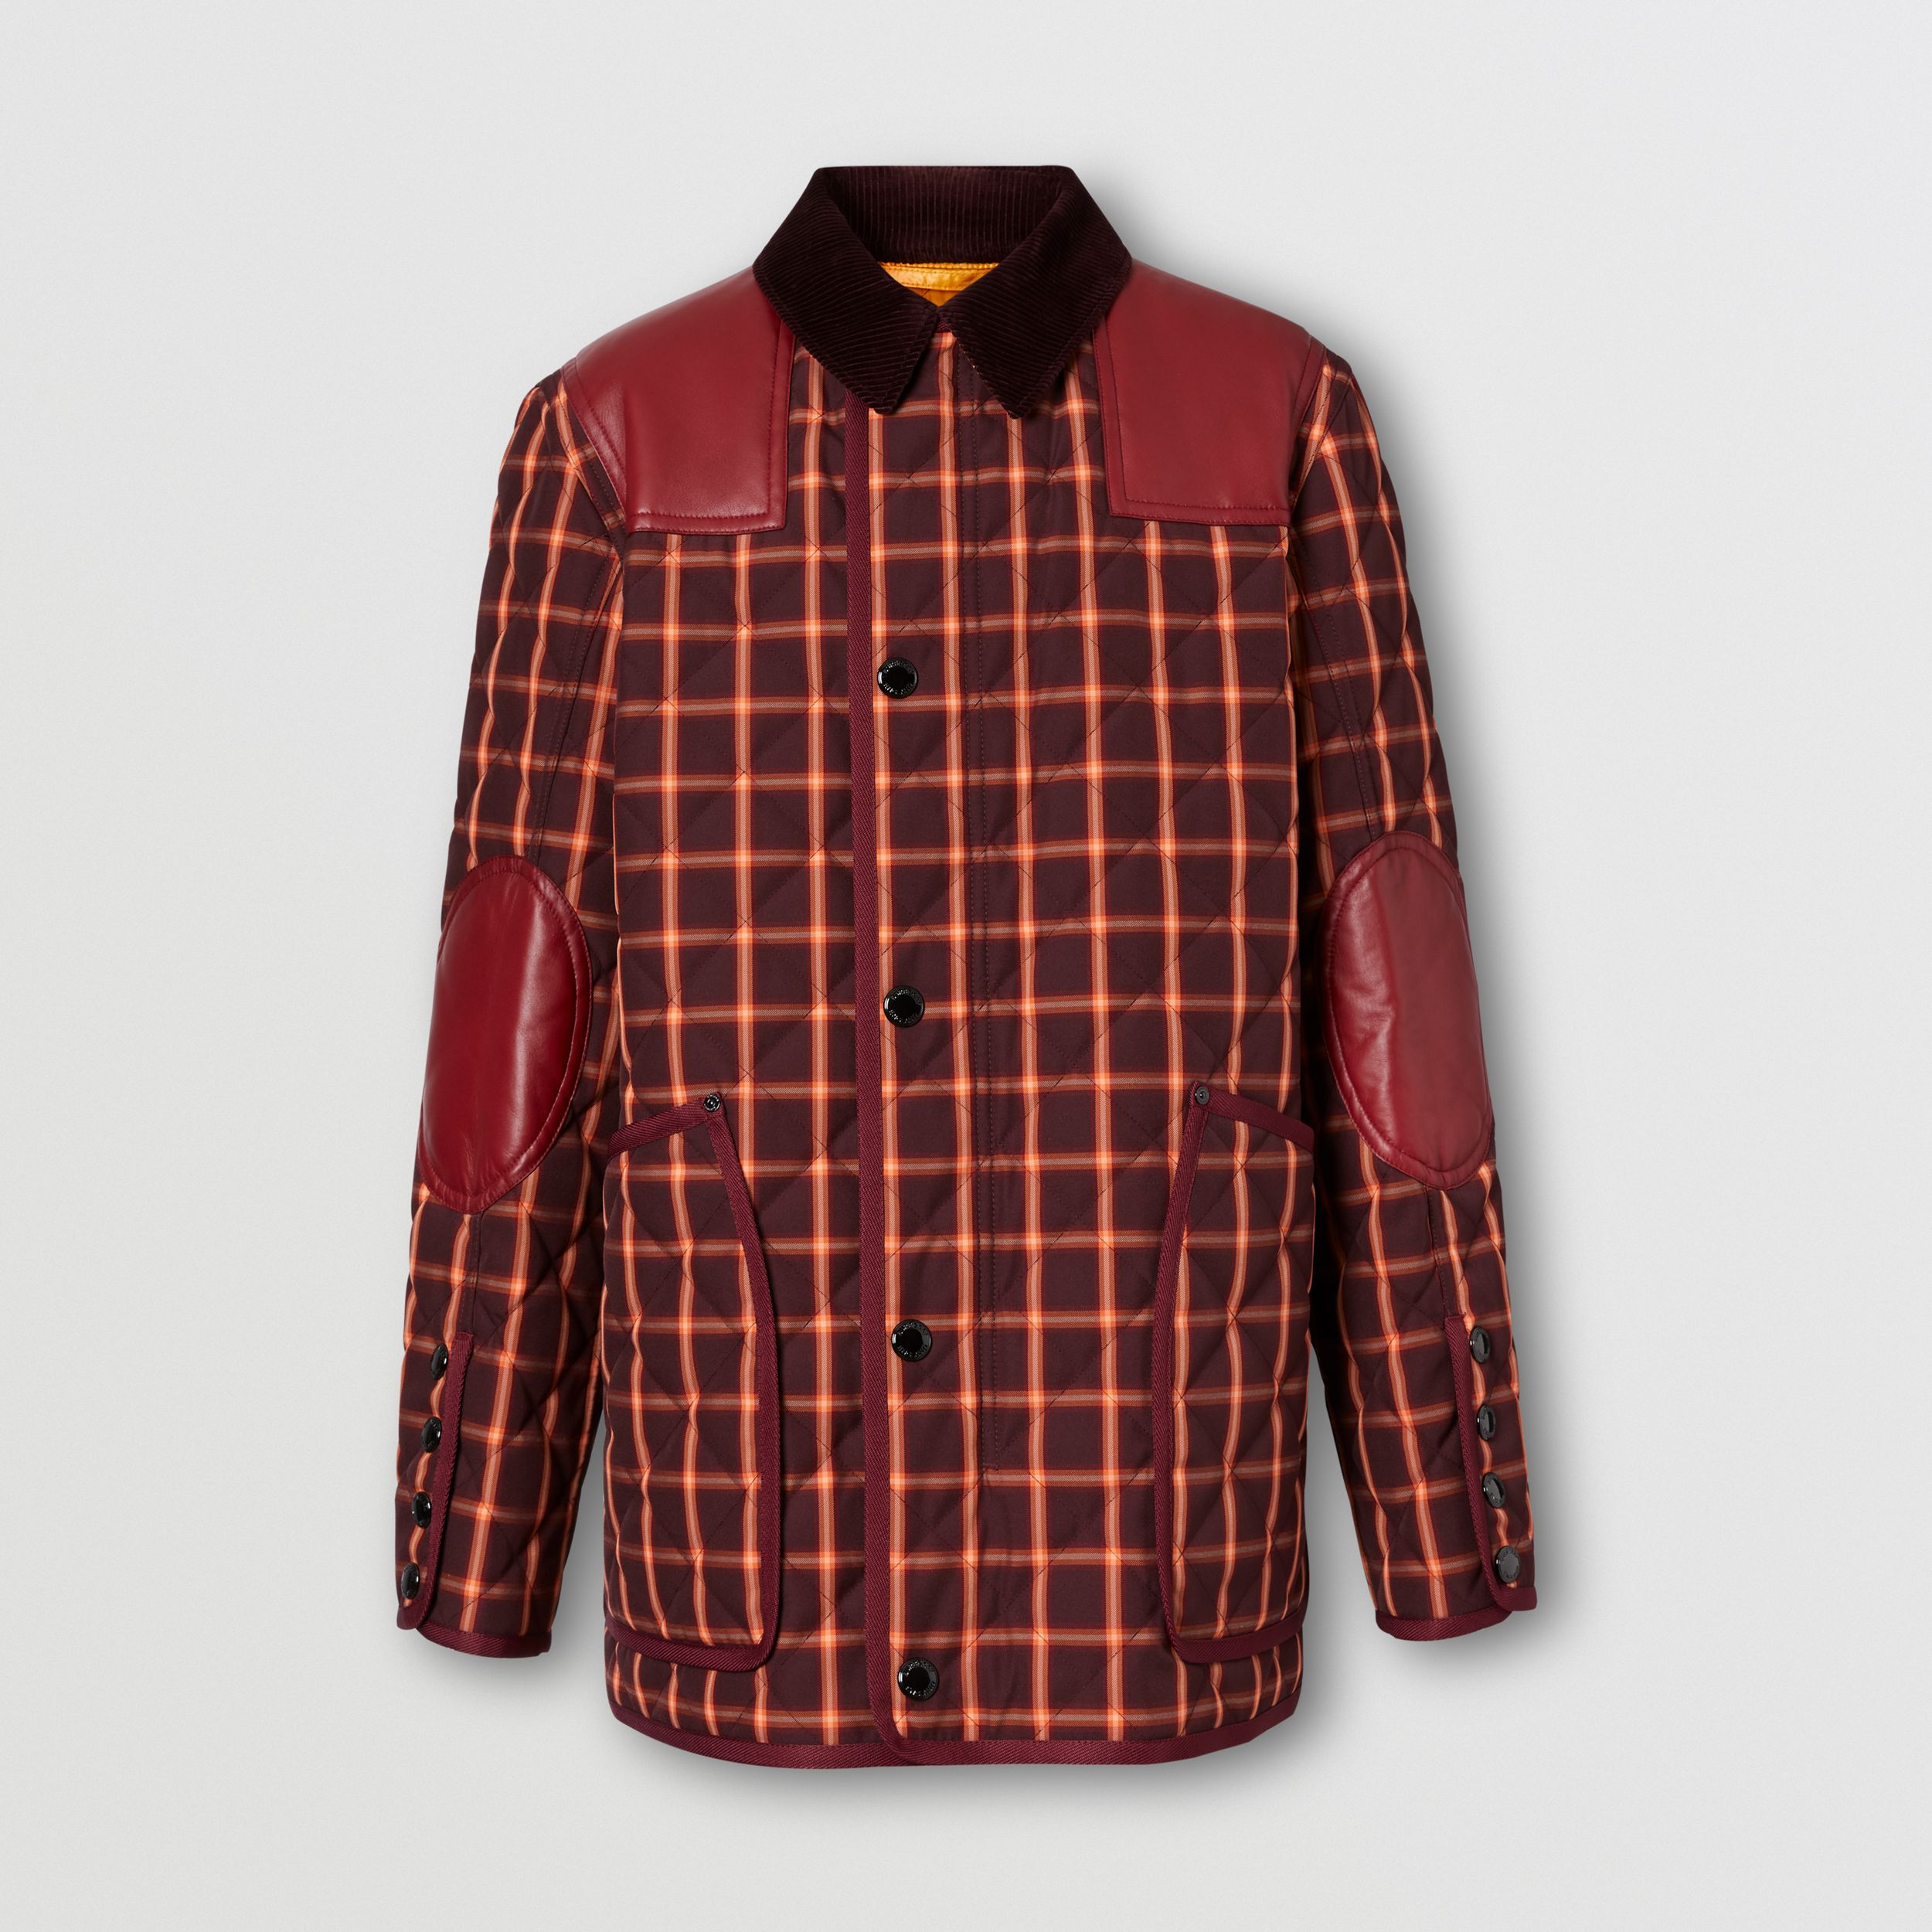 Lambskin Trim Check Technical Cotton Barn Jacket in Burgundy - Men | Burberry - 4